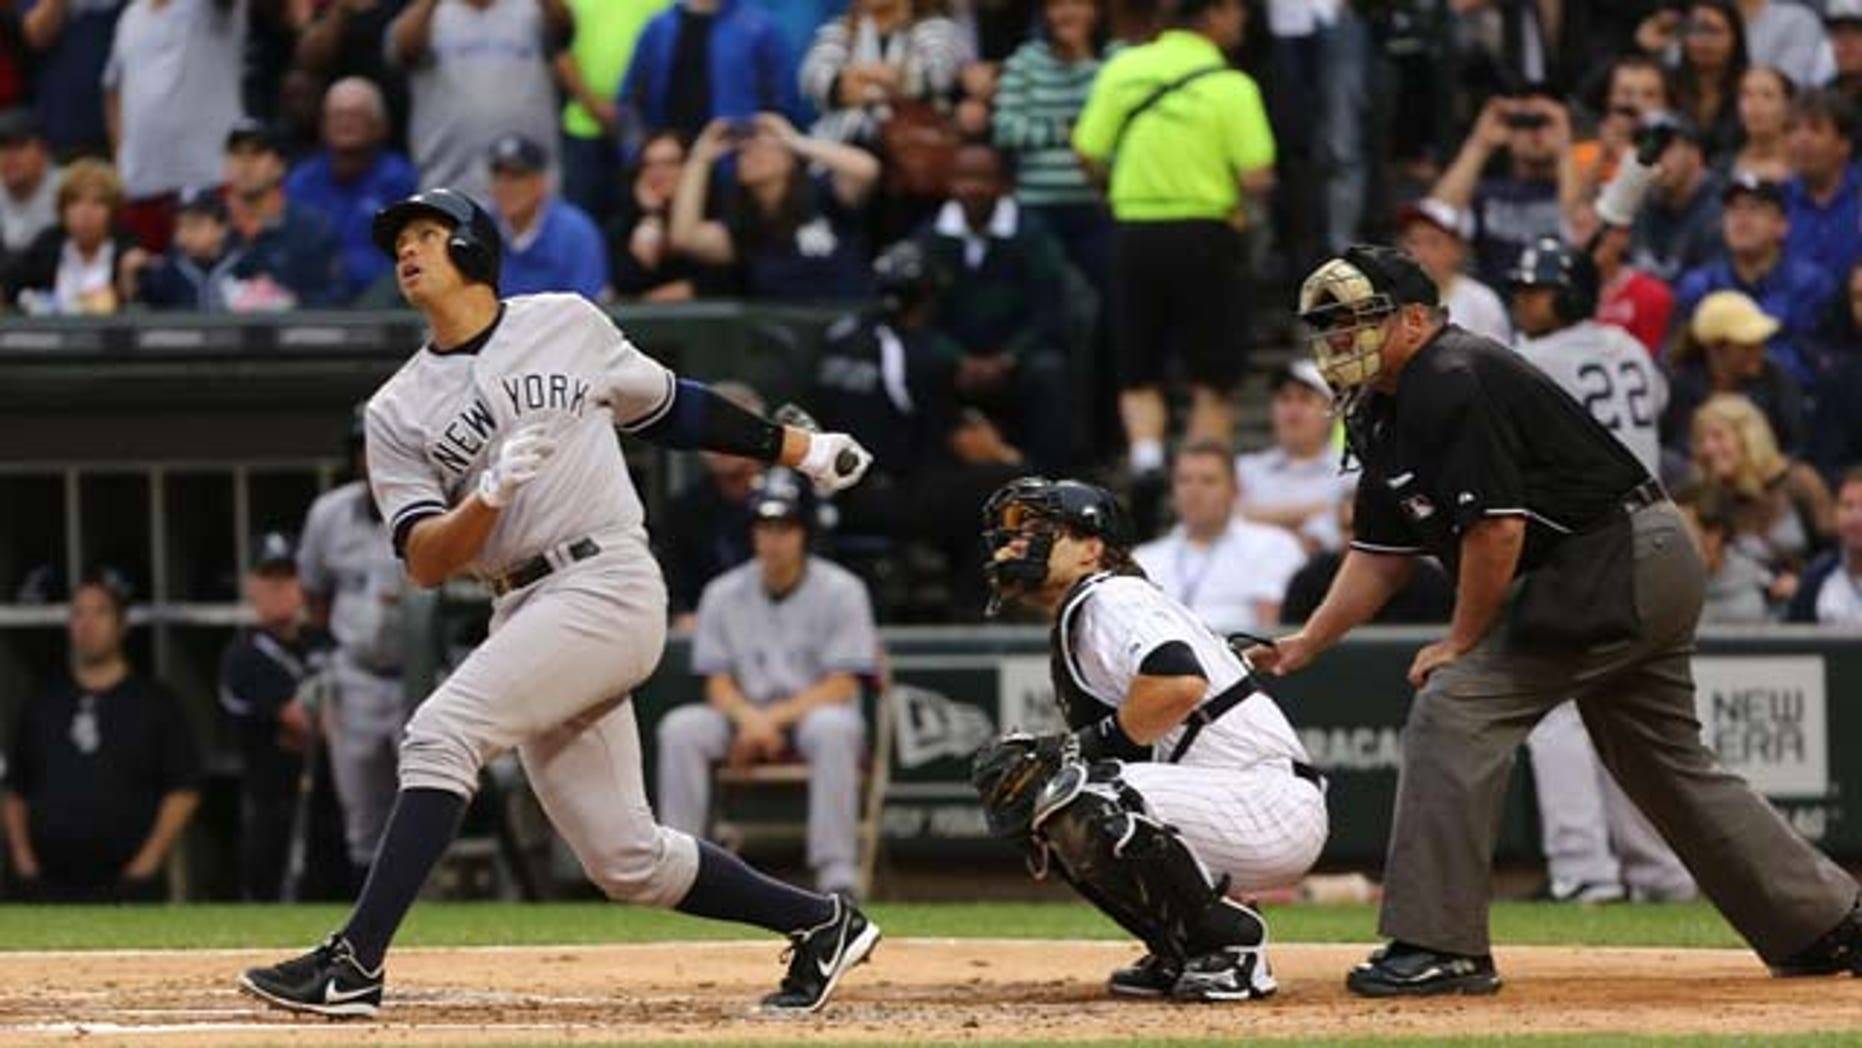 August 5, 2013: New York Yankees' Alex Rodriguez, left, gets a hit in his first at bat against the Chicago White Sox in the first inning in a baseball game at US Cellular Field in Chicago.